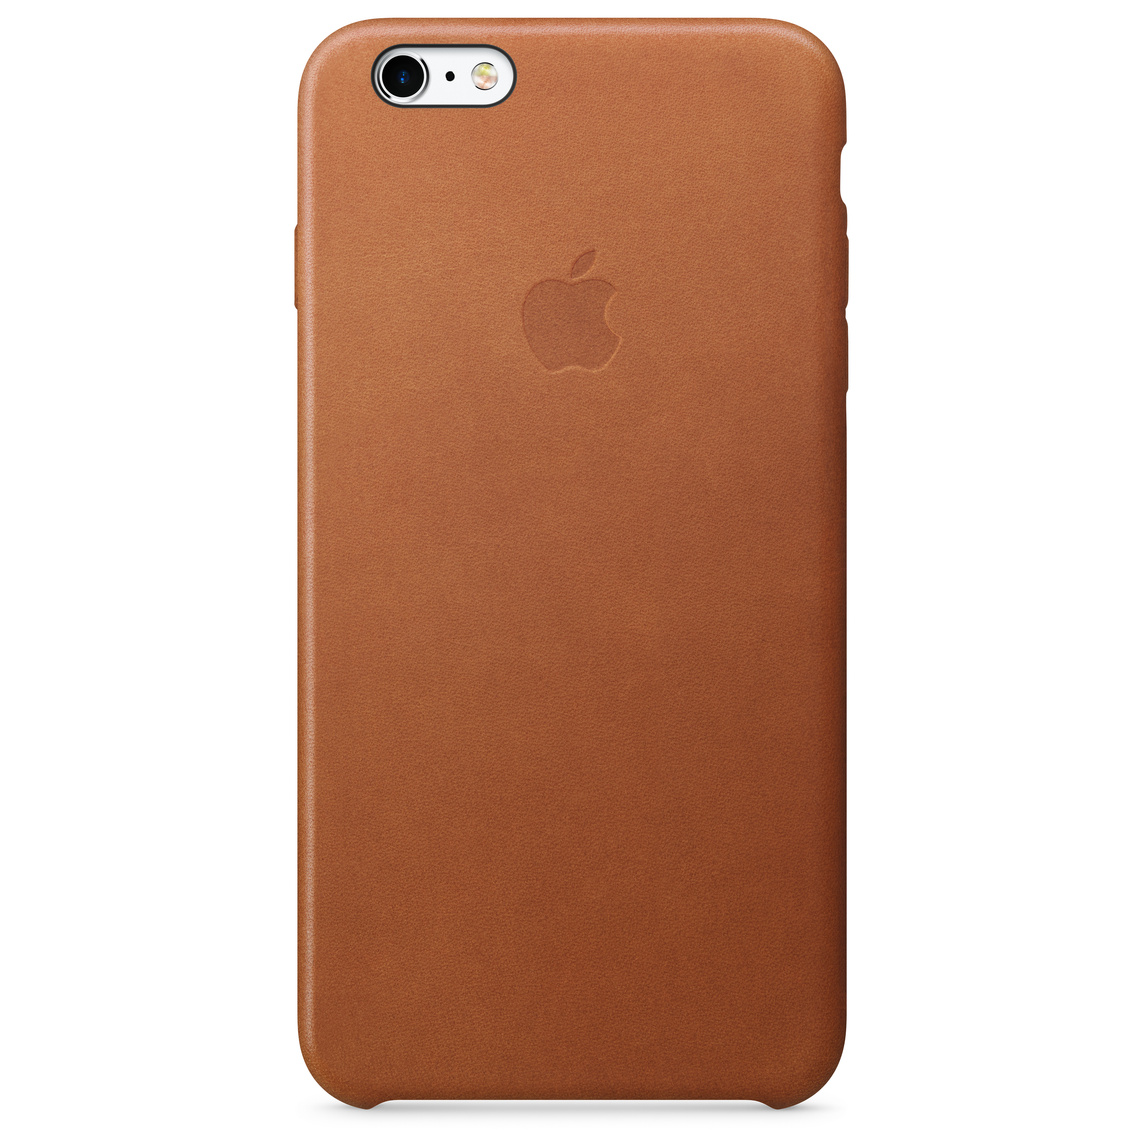 the best attitude 1dd83 a70d0 iPhone 6 Plus / 6s Plus Leather Case - Saddle Brown